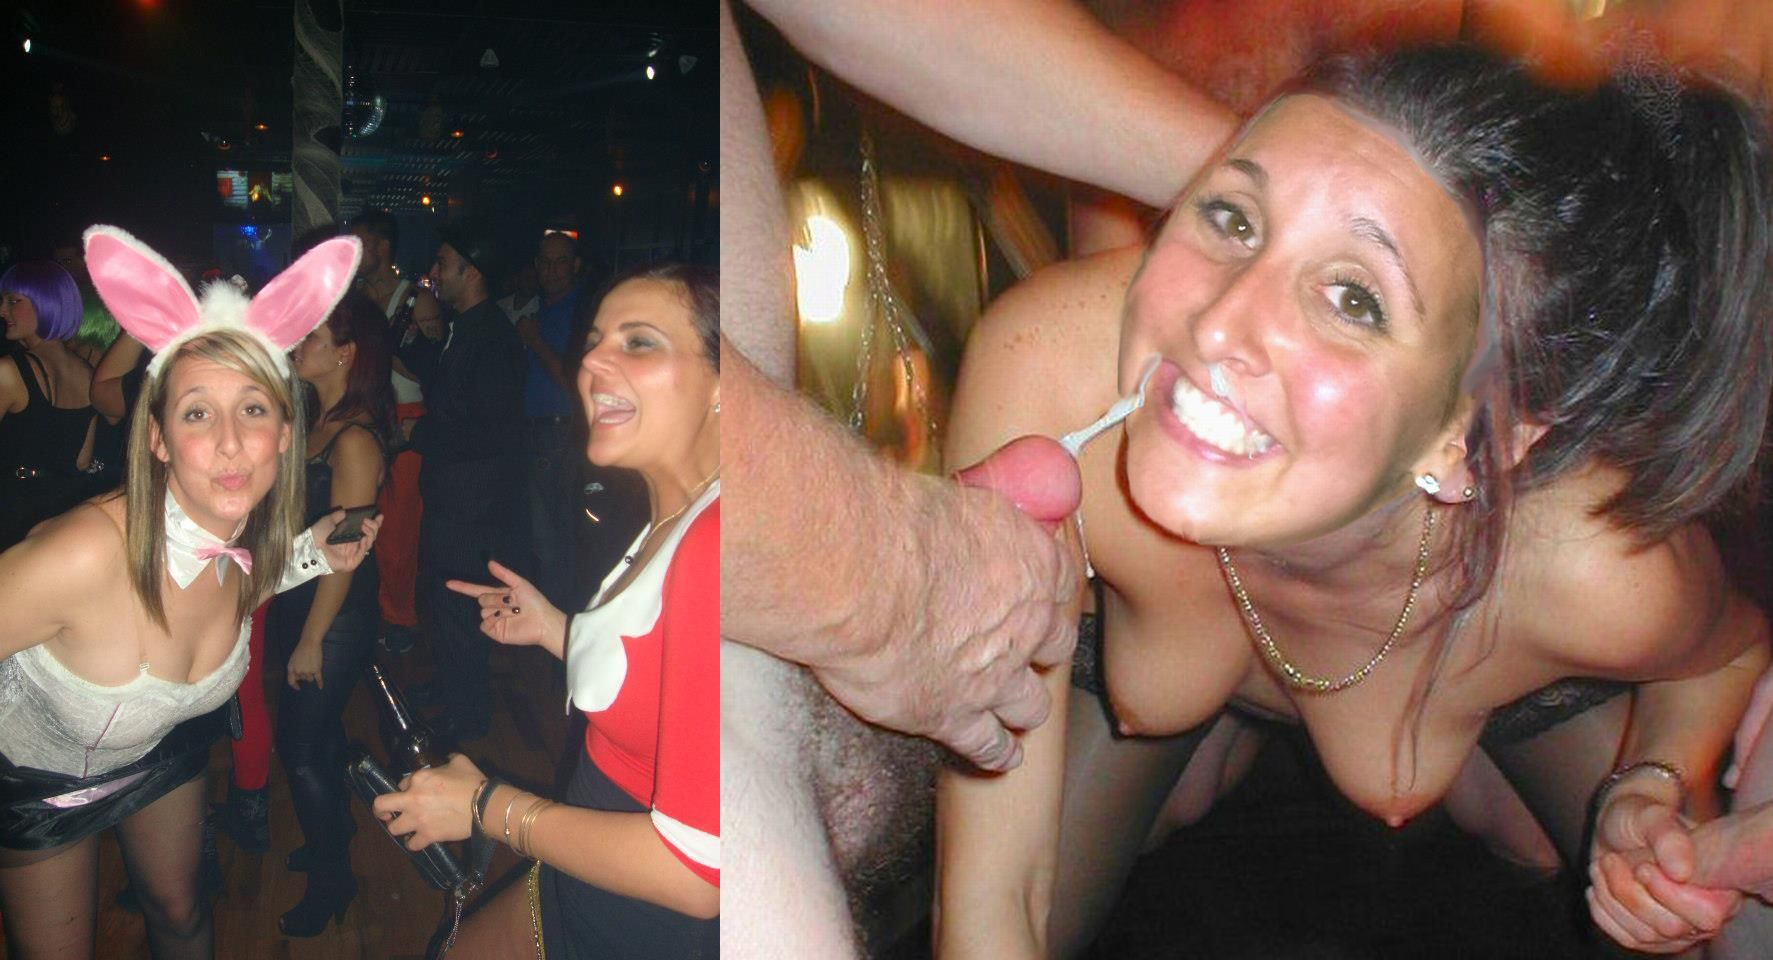 Before and after gangbang